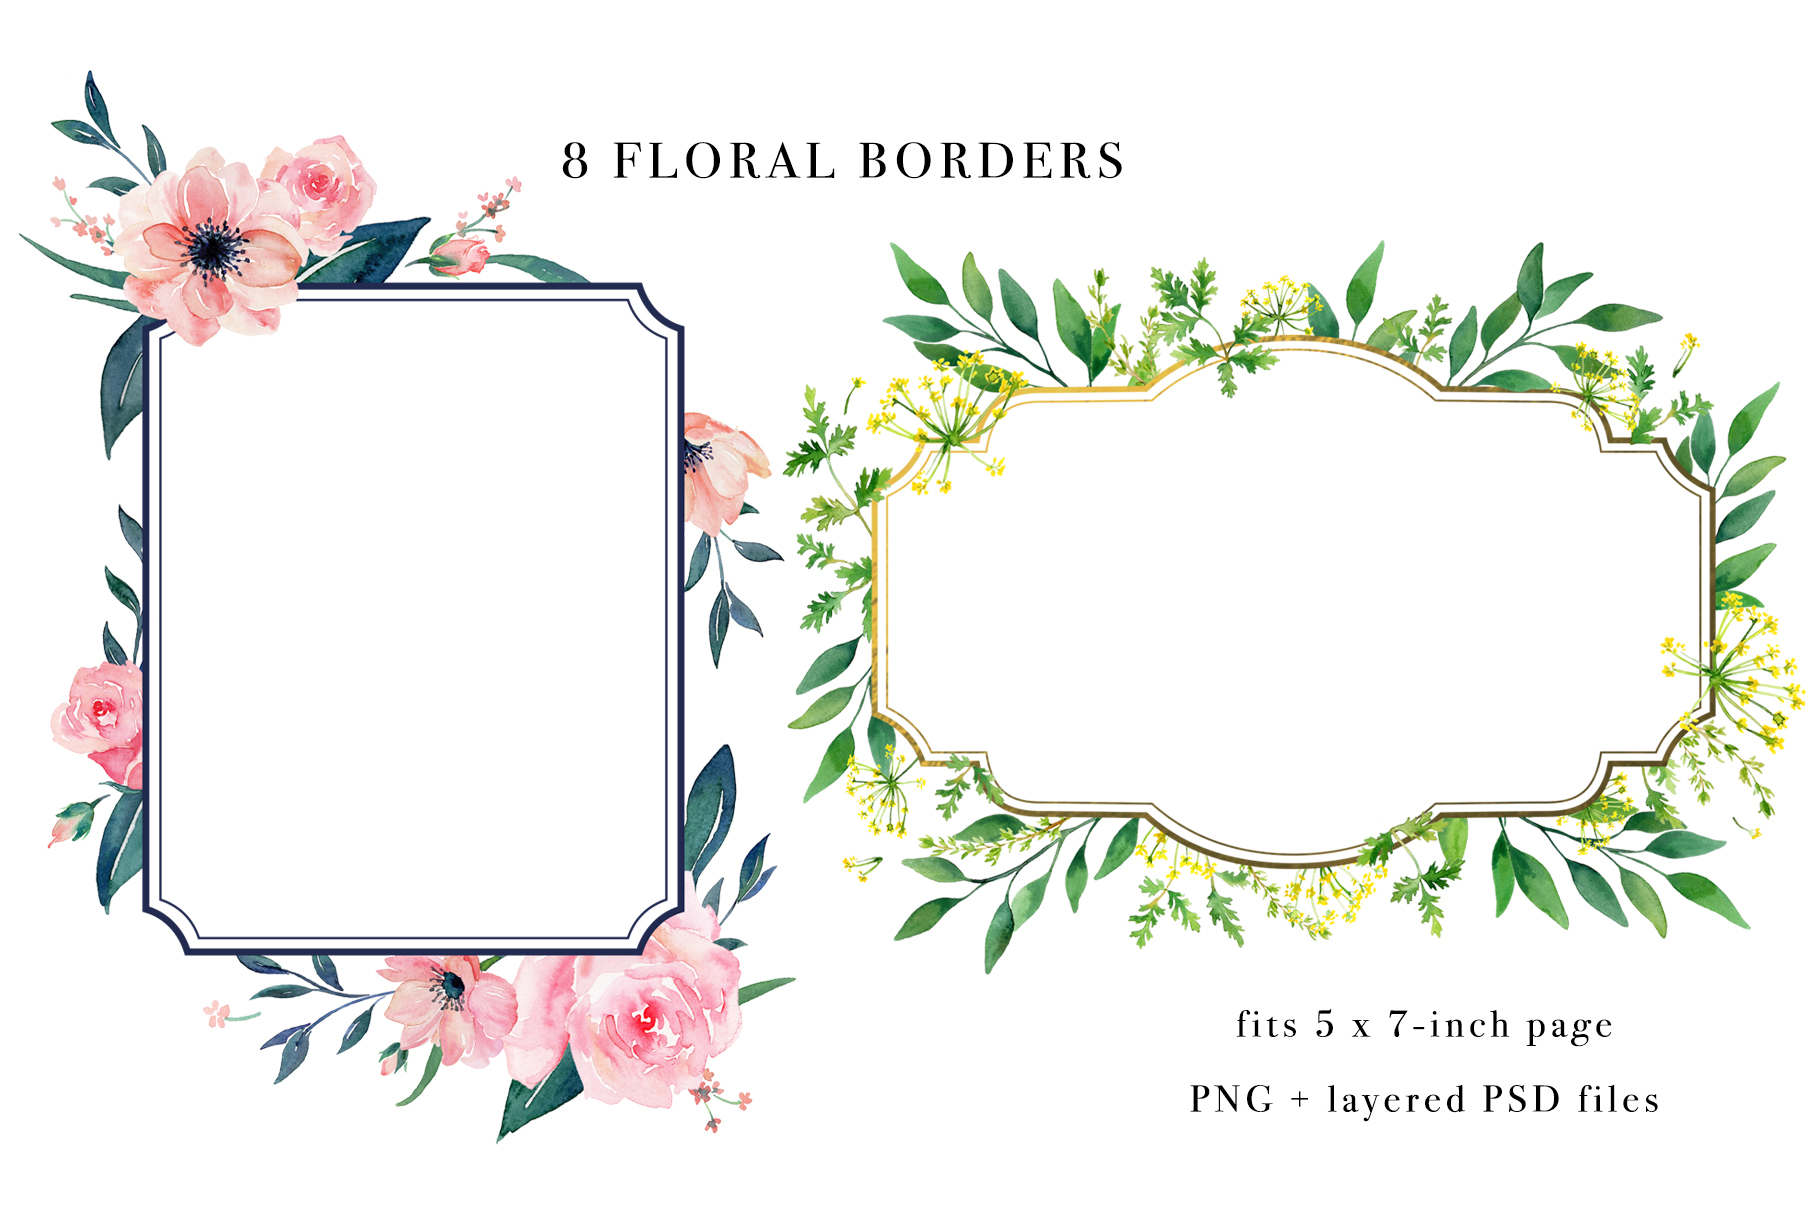 Floral Borders Watercolor Set example image 5